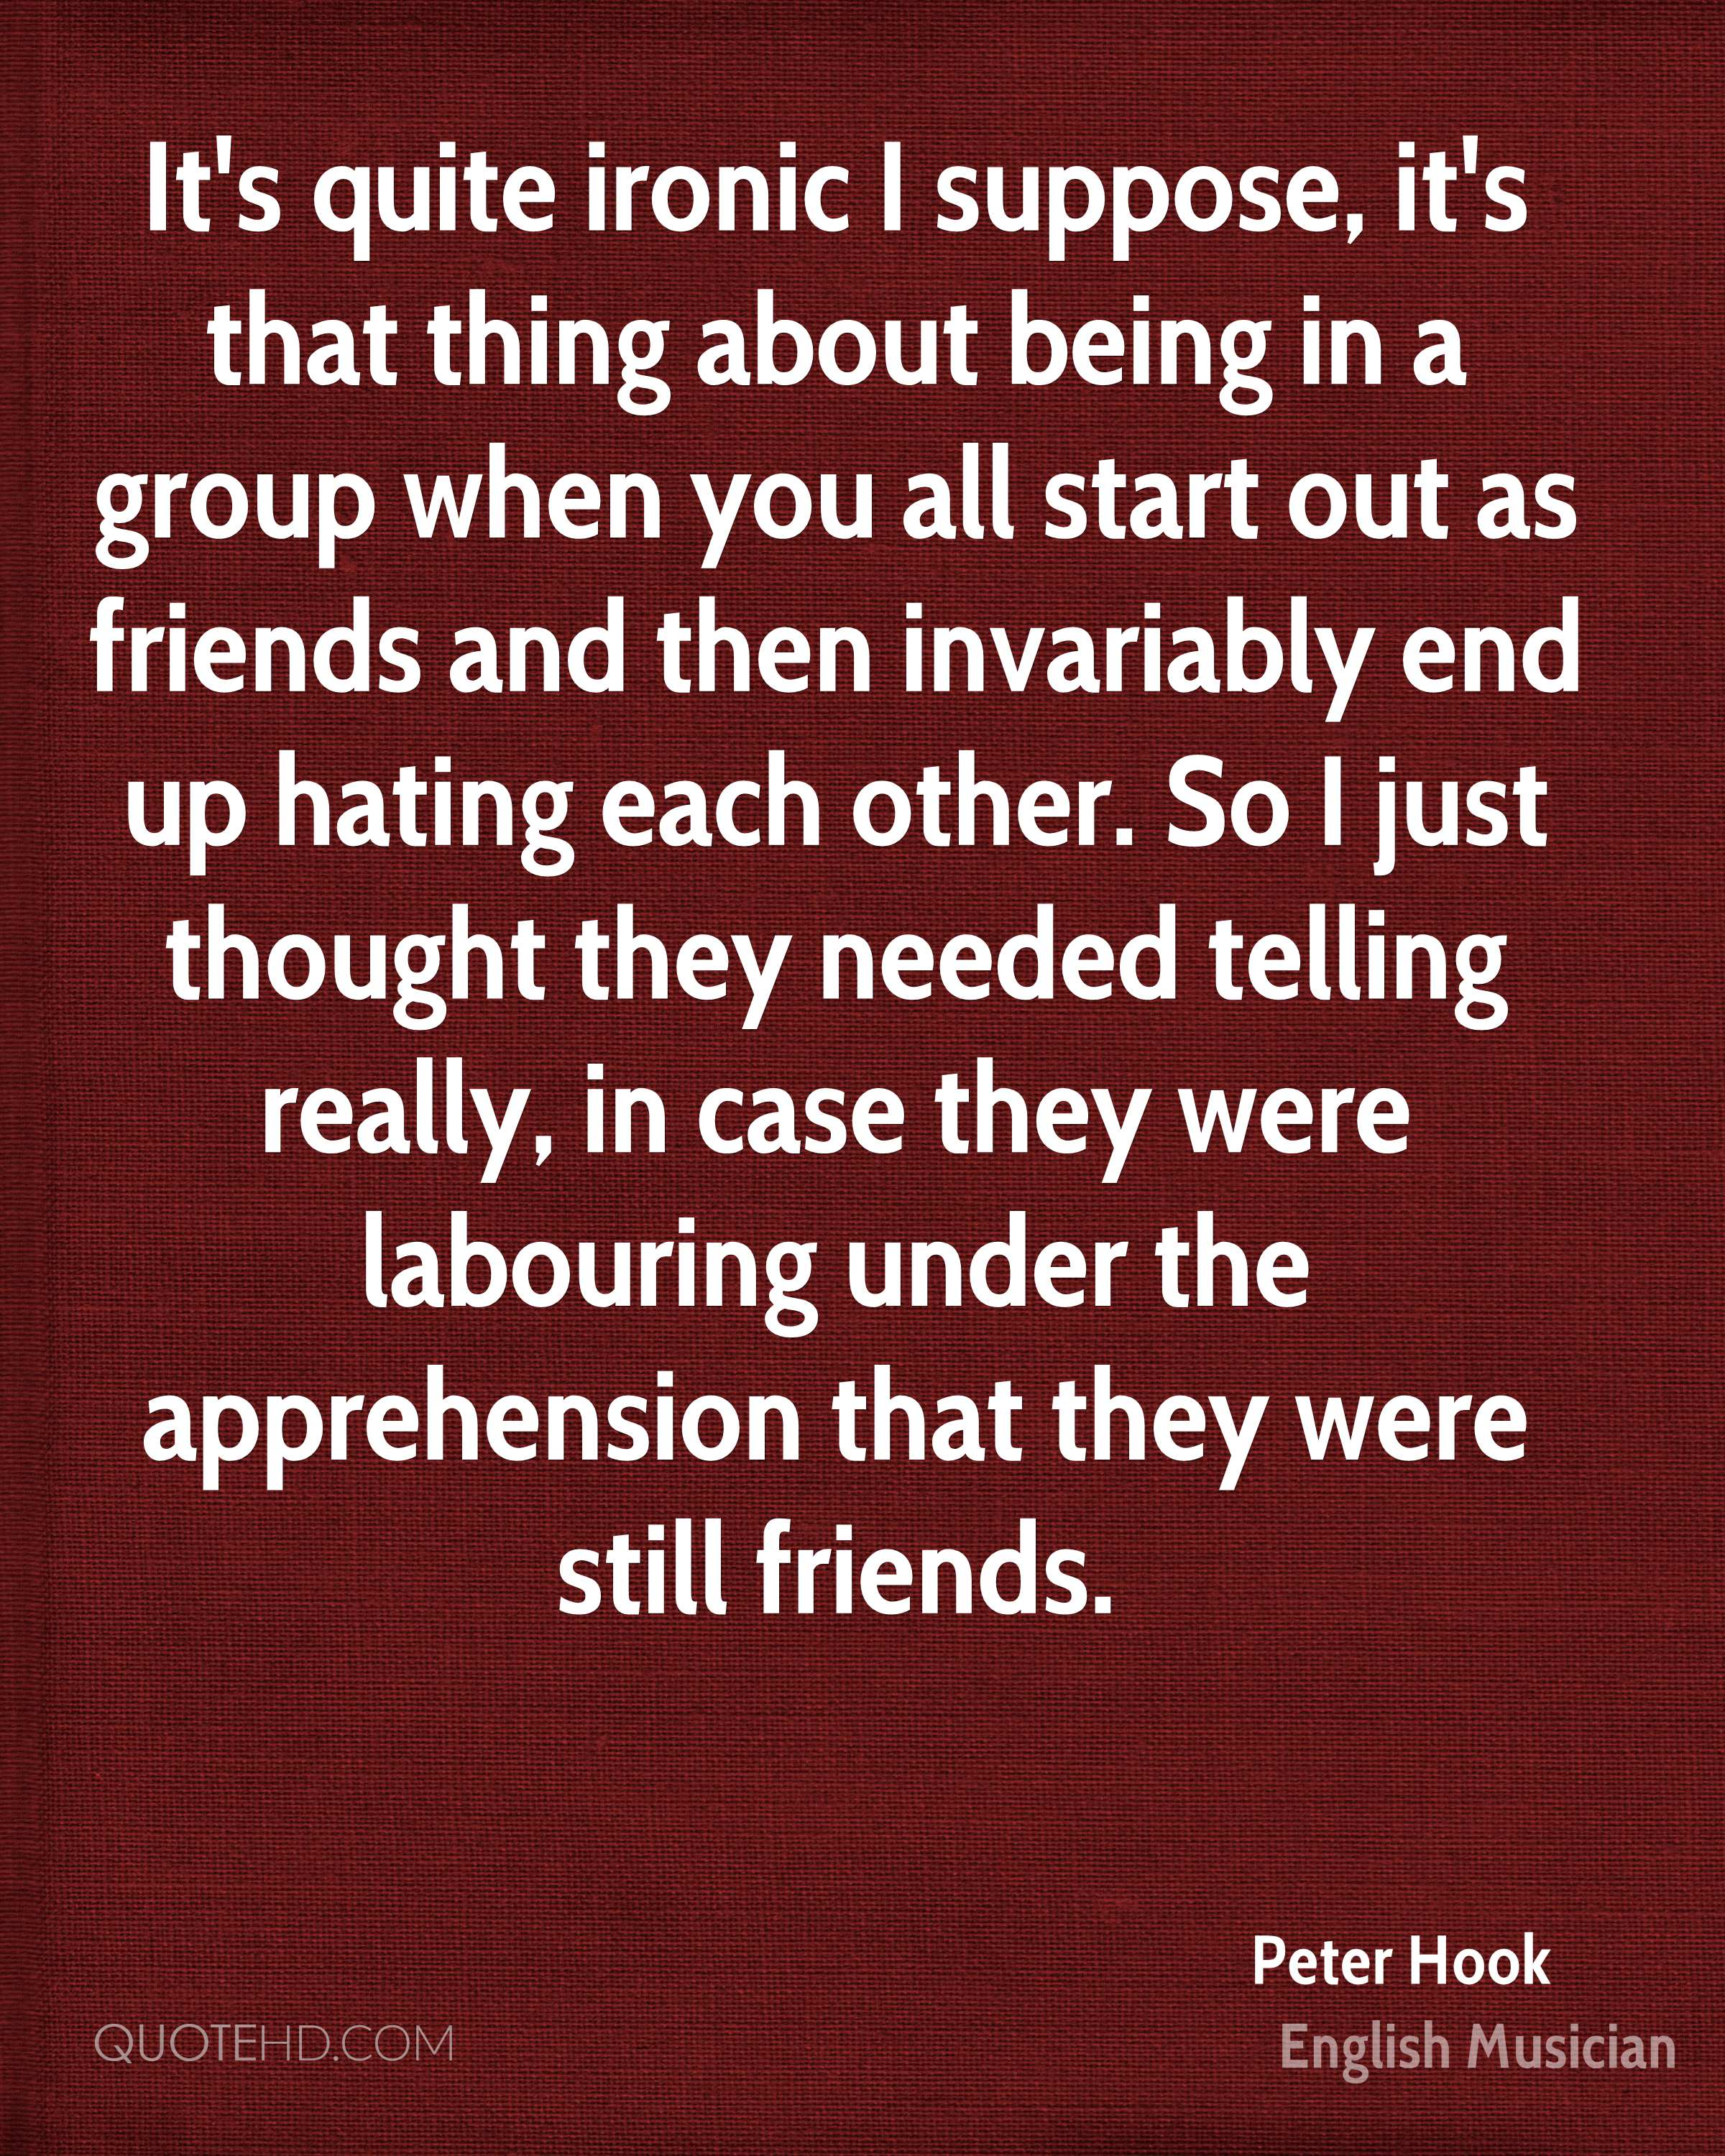 It's quite ironic I suppose, it's that thing about being in a group when you all start out as friends and then invariably end up hating each other. So I just thought they needed telling really, in case they were labouring under the apprehension that they were still friends.